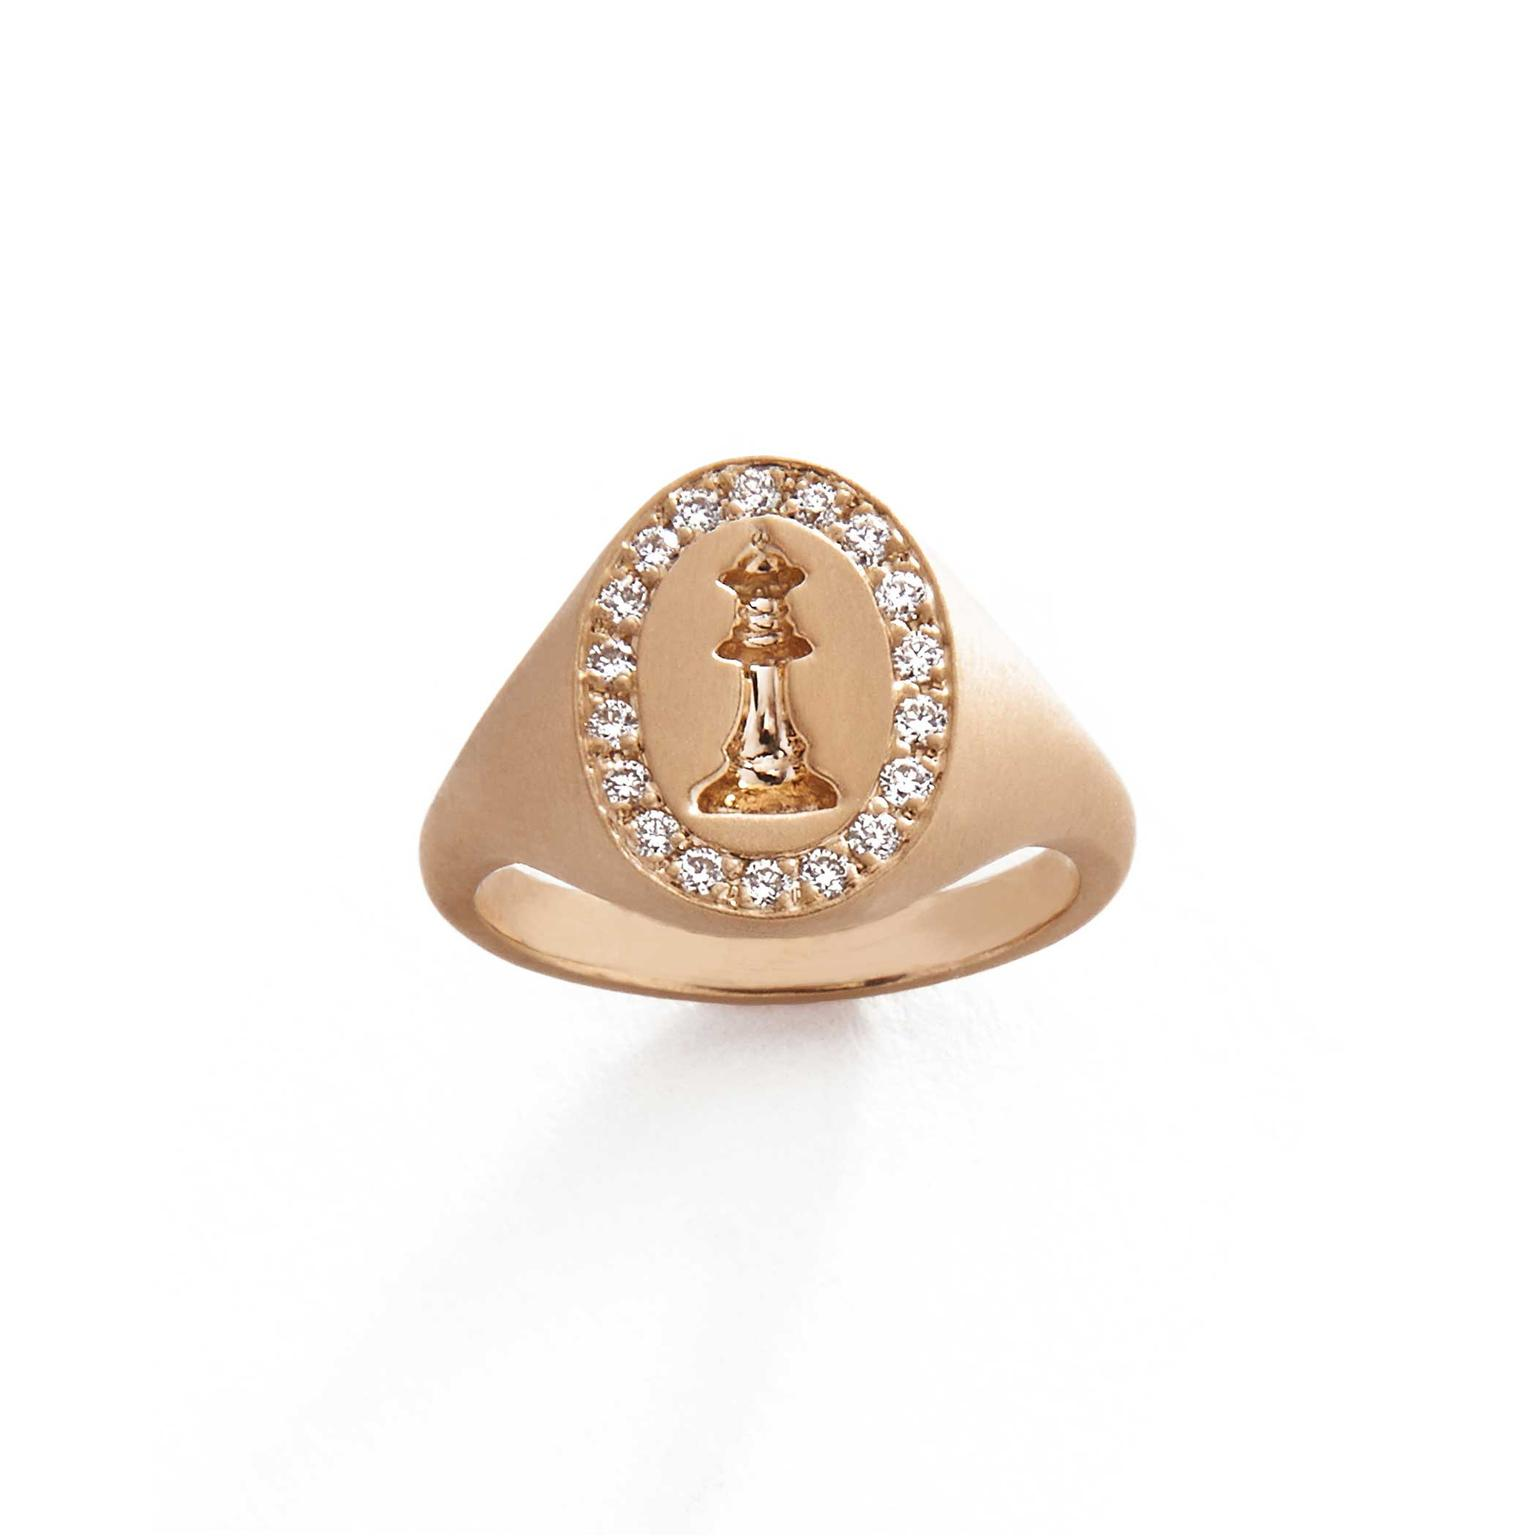 Michelle Fantaci Checkmate pinky ring with diamonds